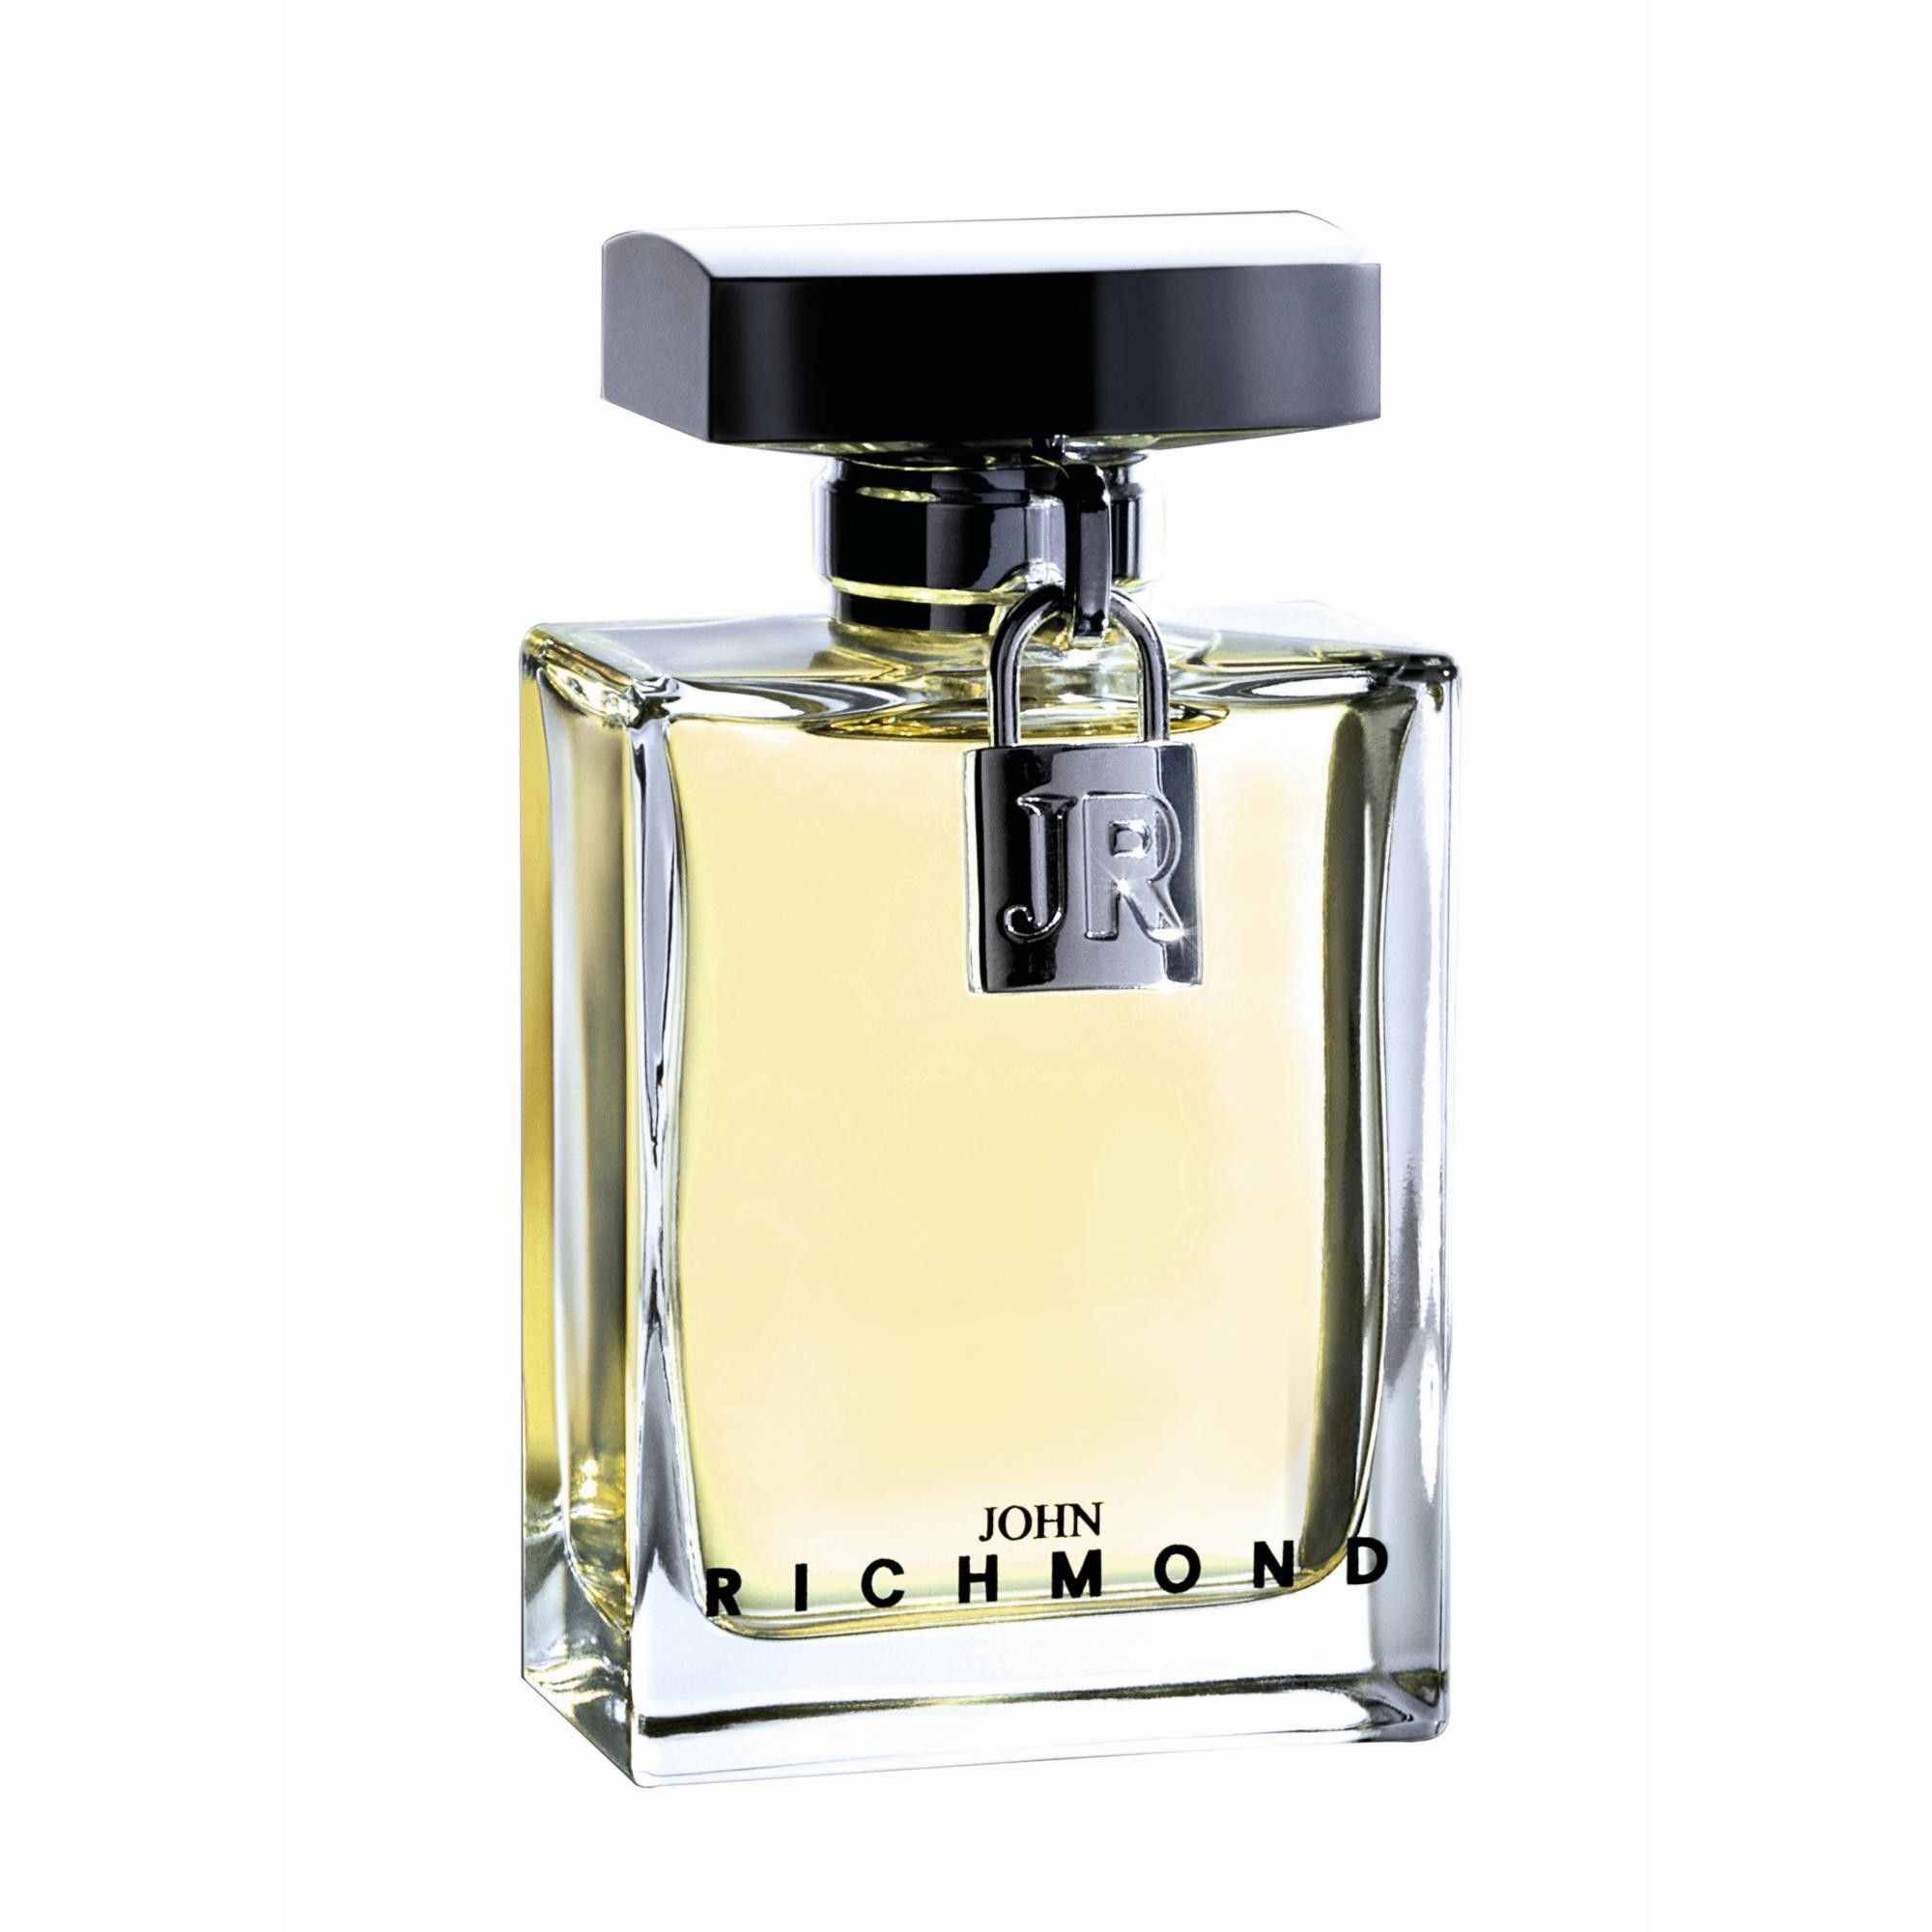 John Richmond edp spray donna 50 ml